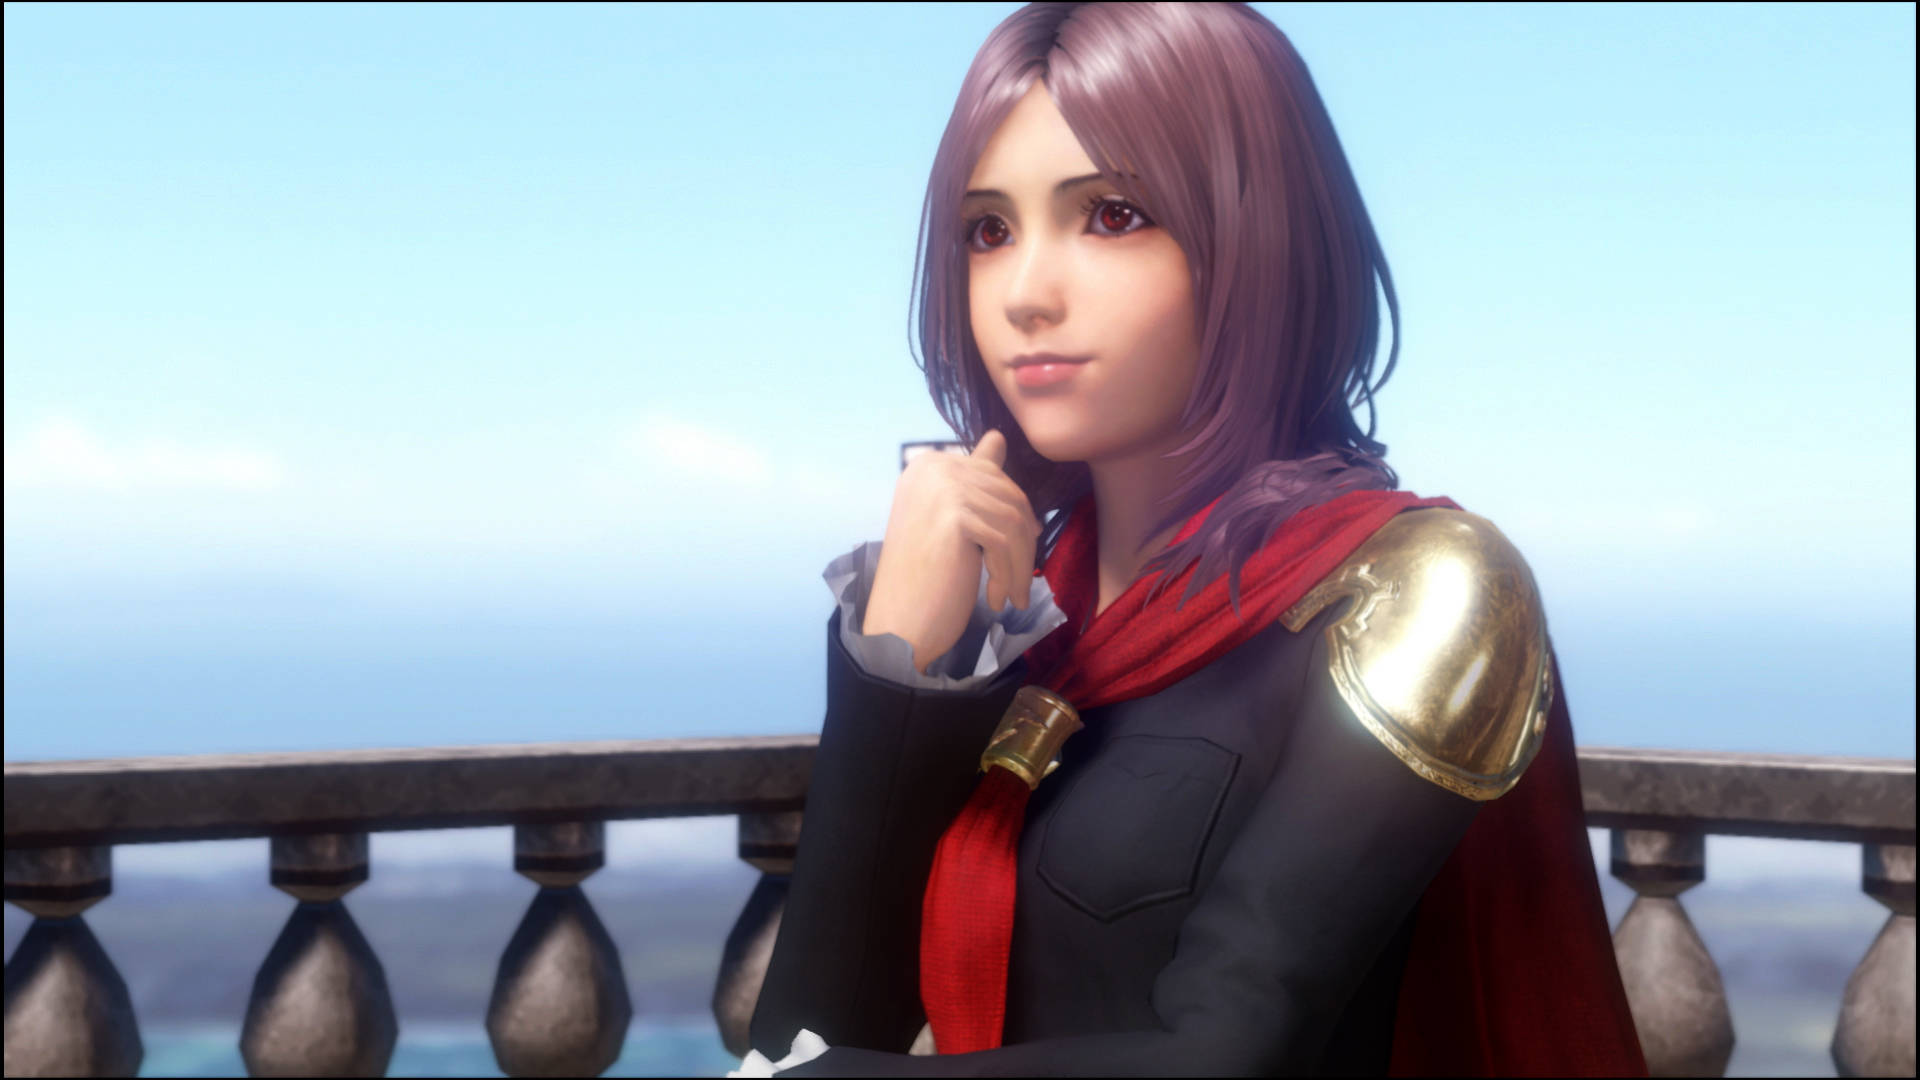 Square Enix likely spent an inordinate amount of time making these shoulder guards look good.